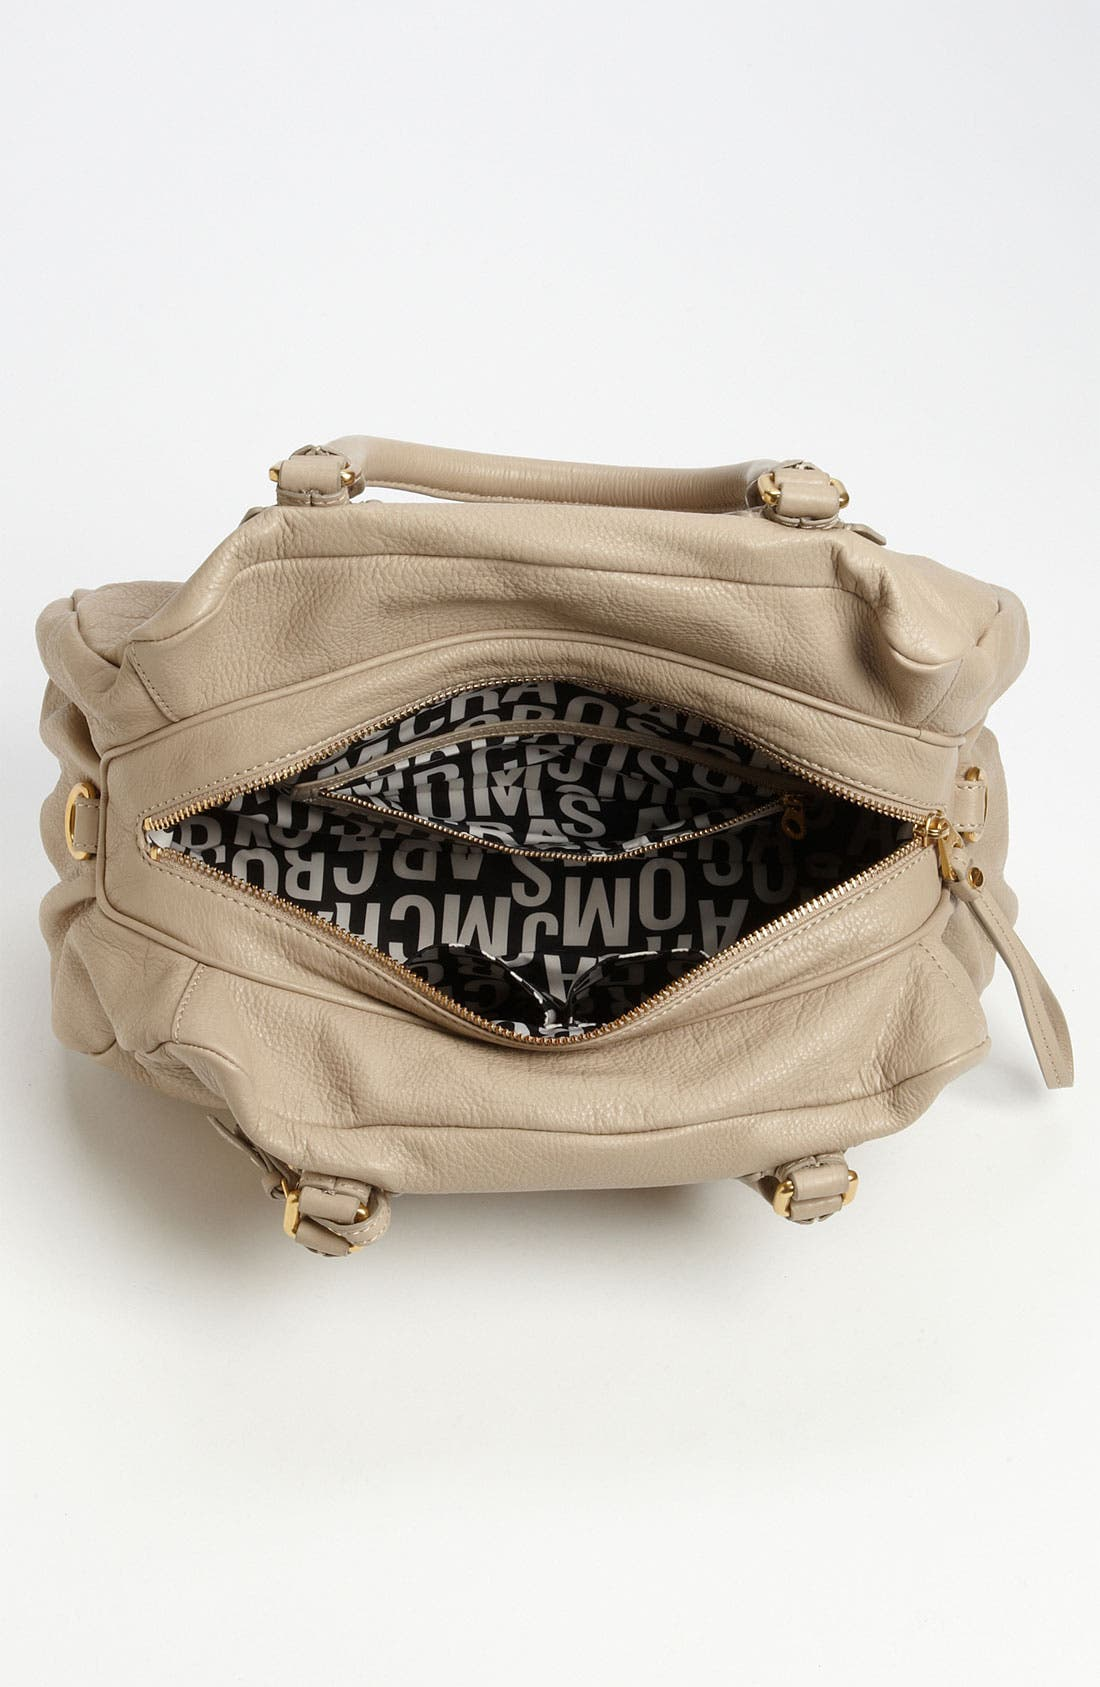 MARC BY MARC JACOBS 'Classic Q - Groovee' Satchel,                             Alternate thumbnail 3, color,                             Creme